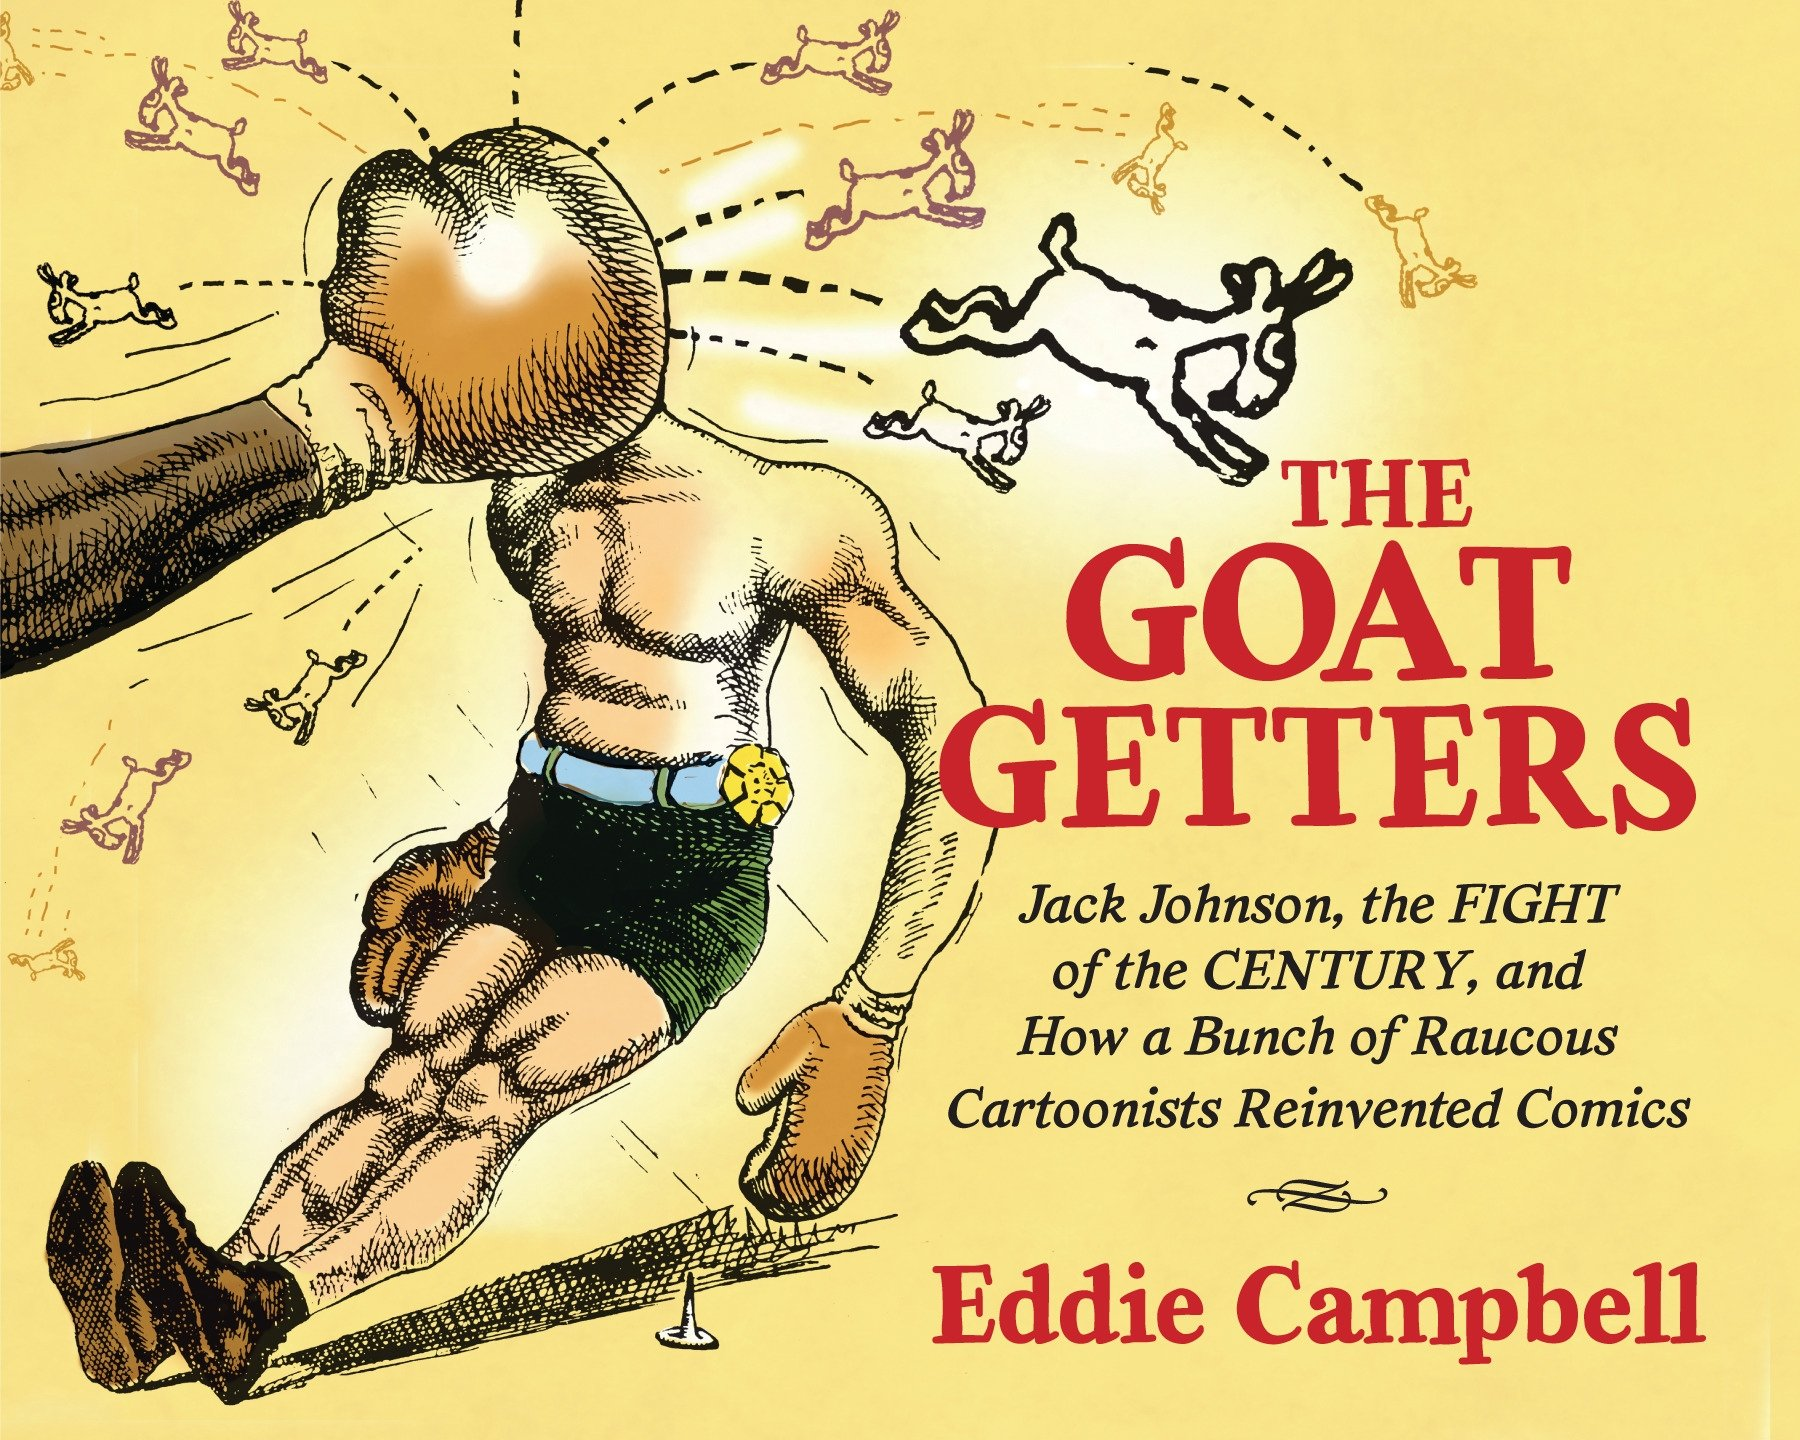 Download The Goat-Getters: Jack Johnson, the Fight of the Century, and How a Bunch of Raucous Cartoonists Reinvented Comics pdf